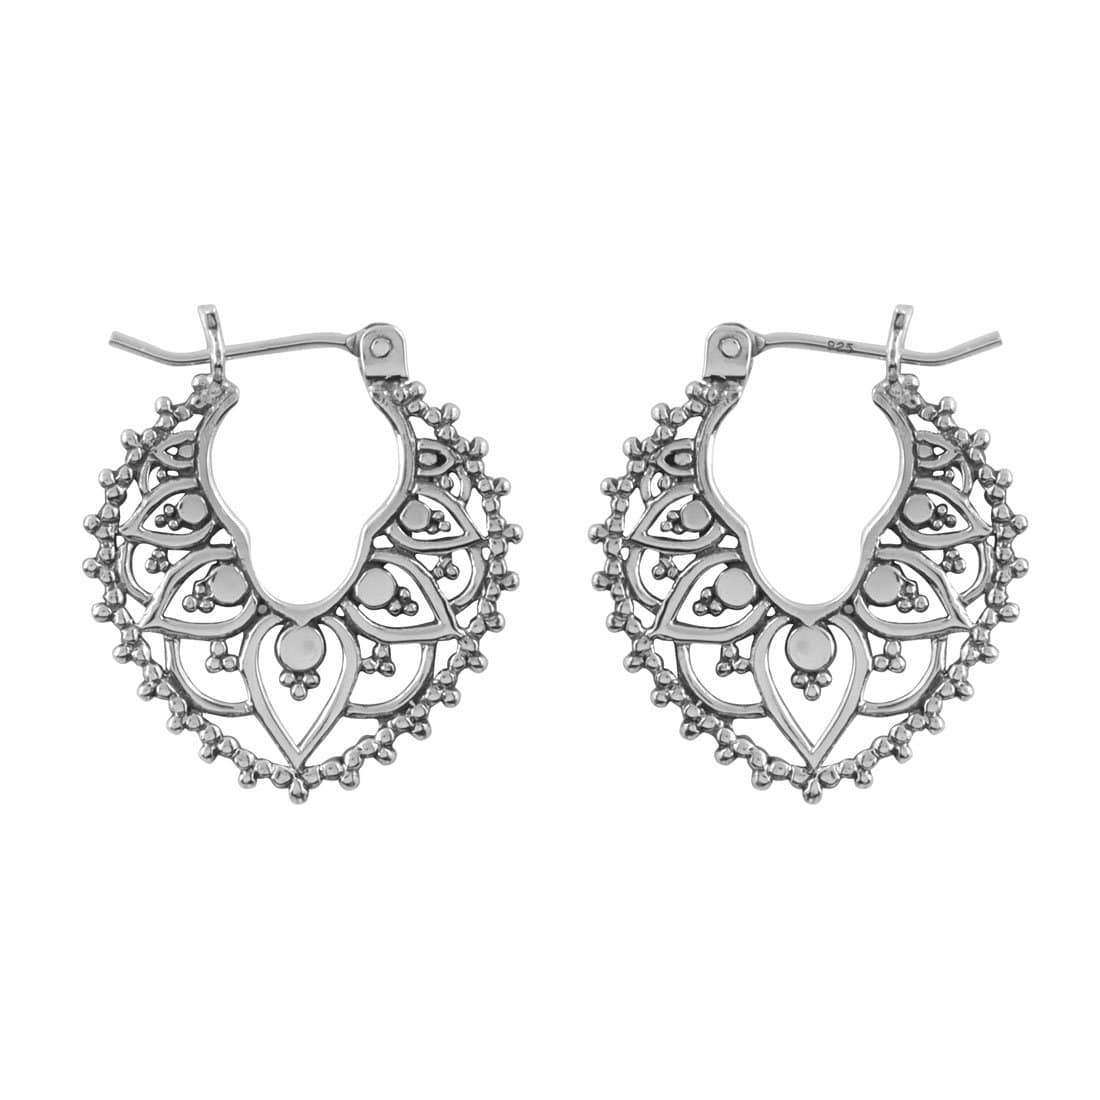 Midsummer Star Earrings Captivate Hoops